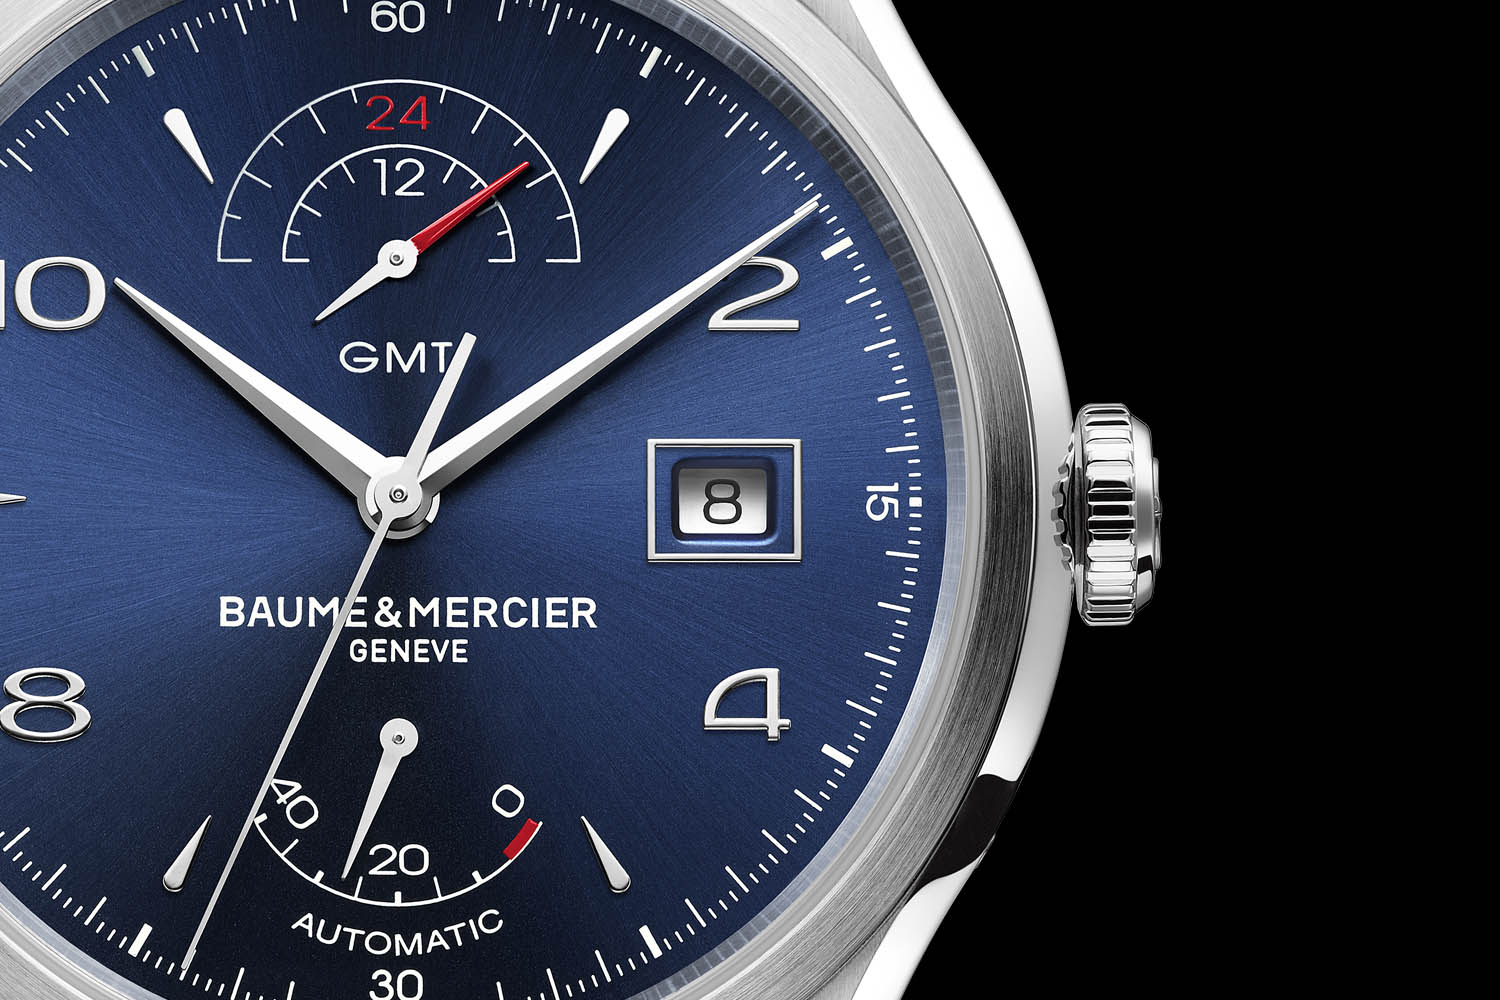 Baume & Mercier Clifton GMT Power Reserve - SIHH 2017